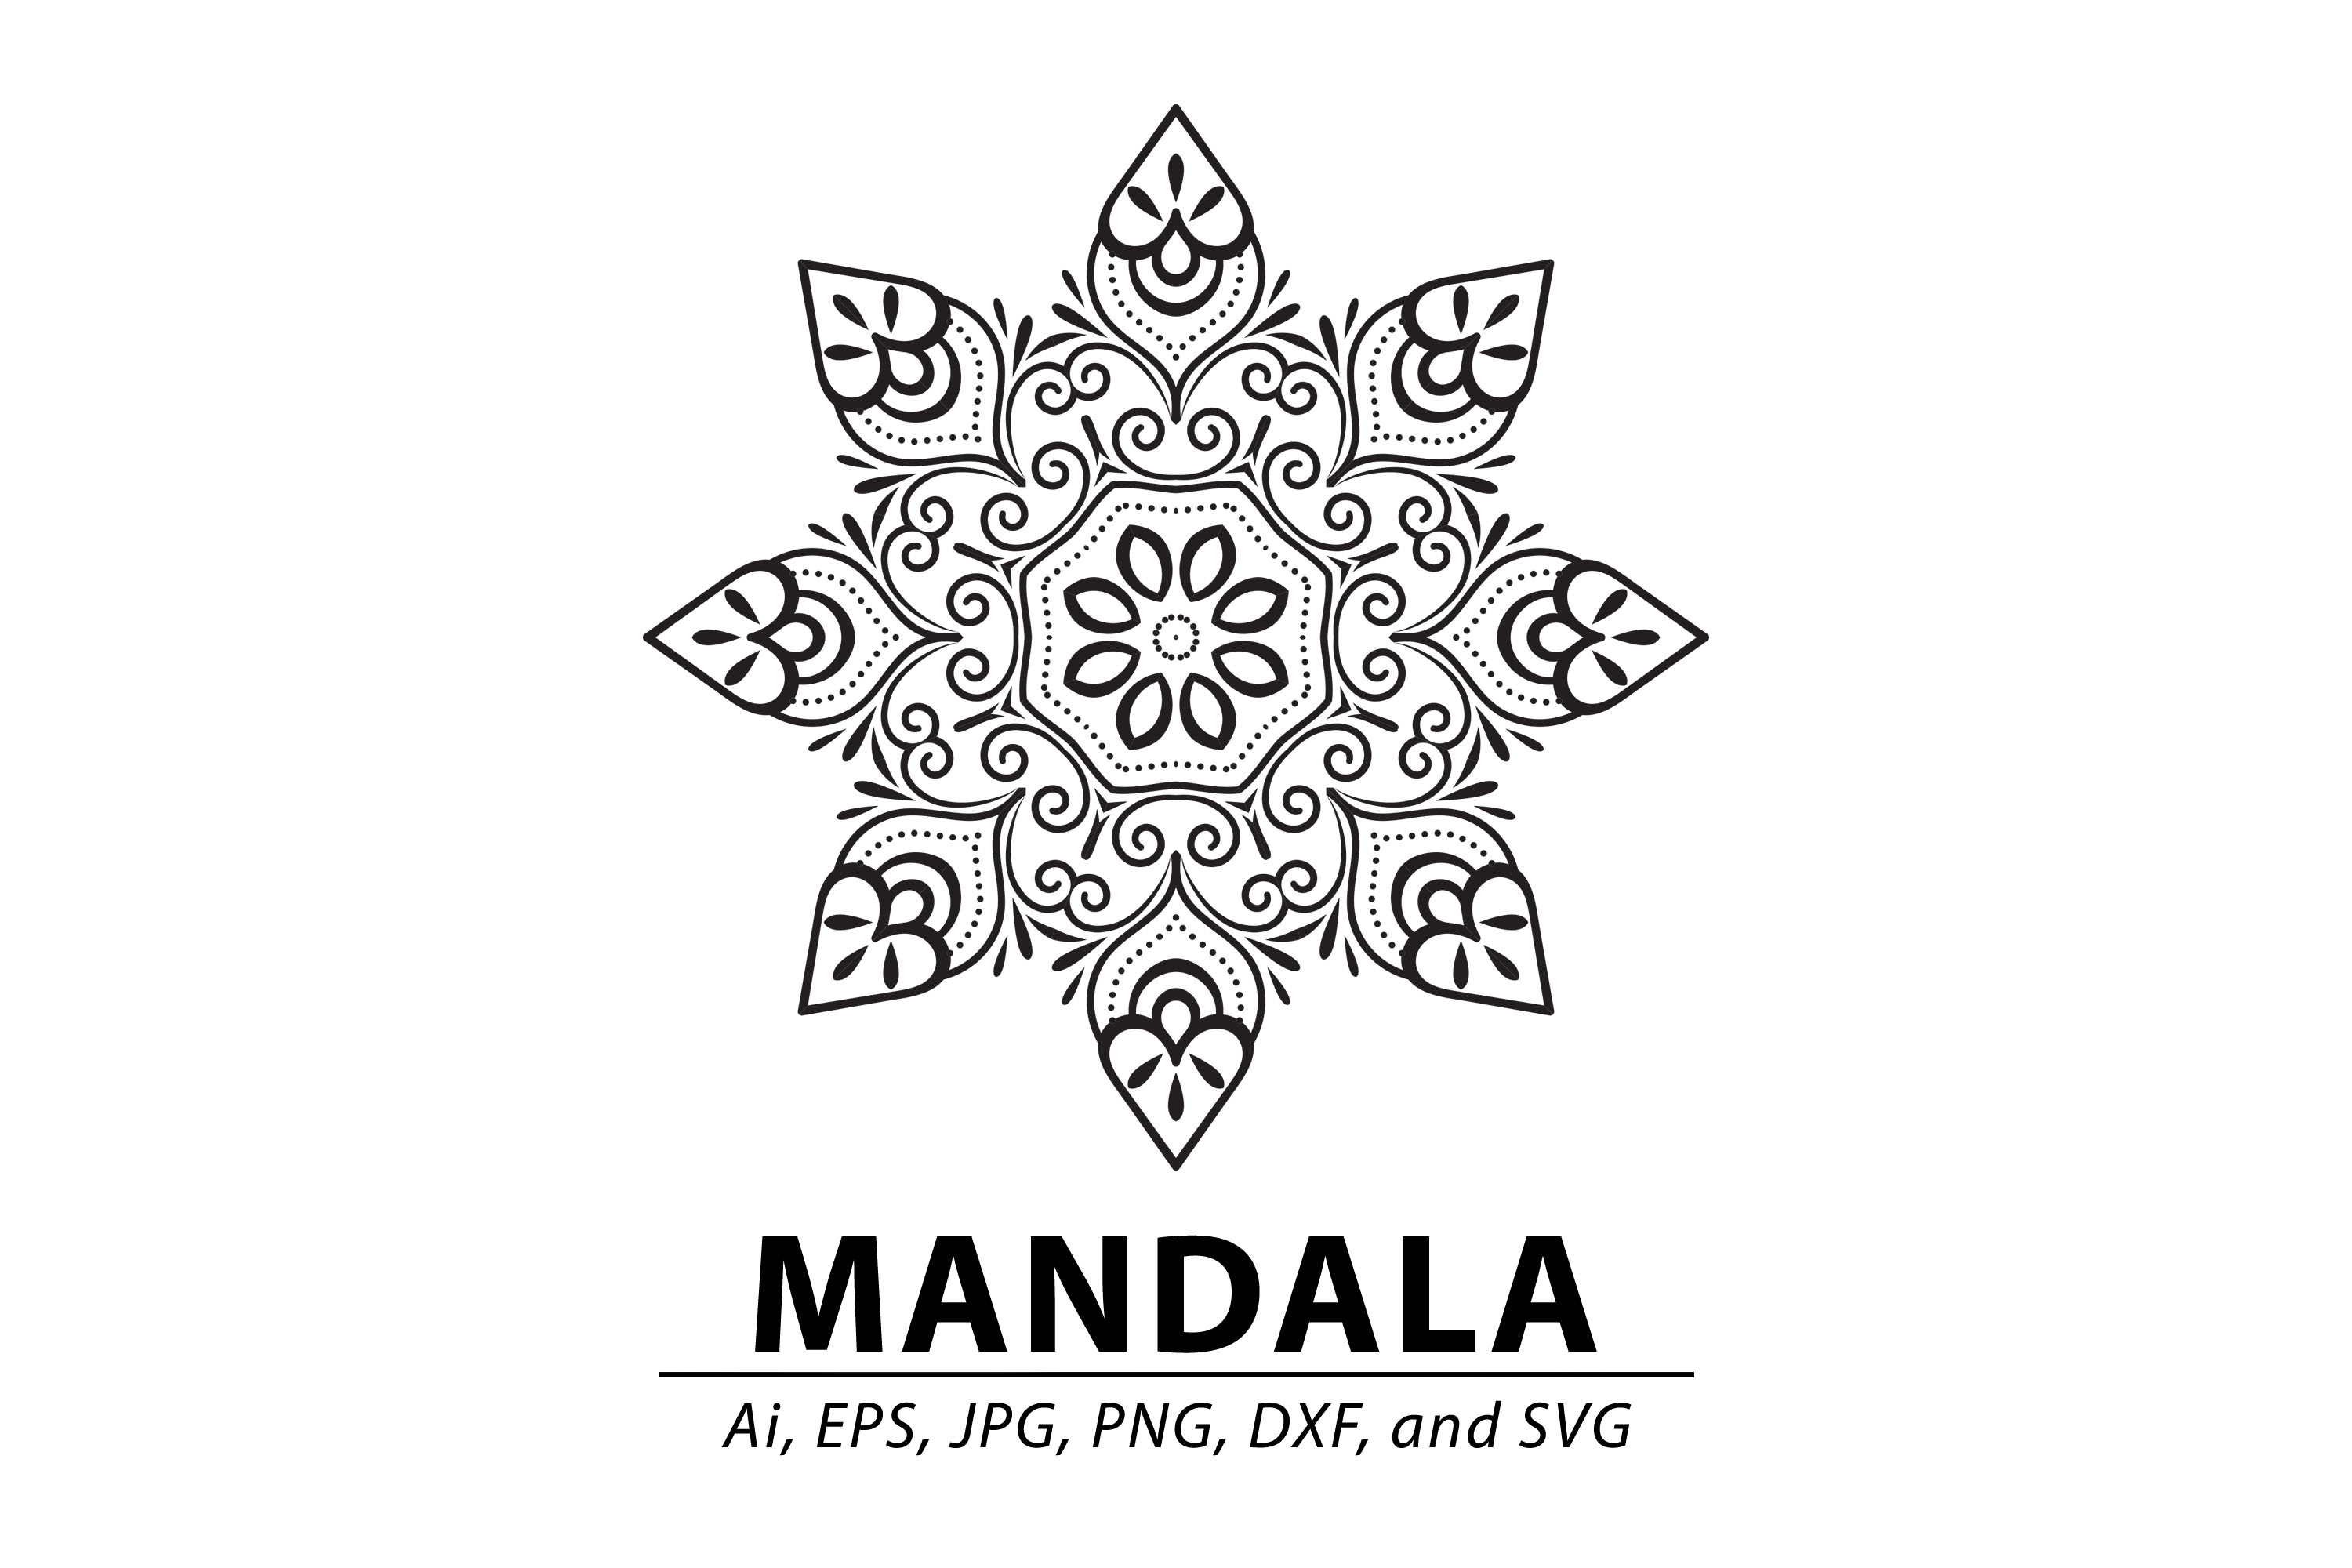 Download Free Mandala Graphic By Redsugardesign Creative Fabrica for Cricut Explore, Silhouette and other cutting machines.